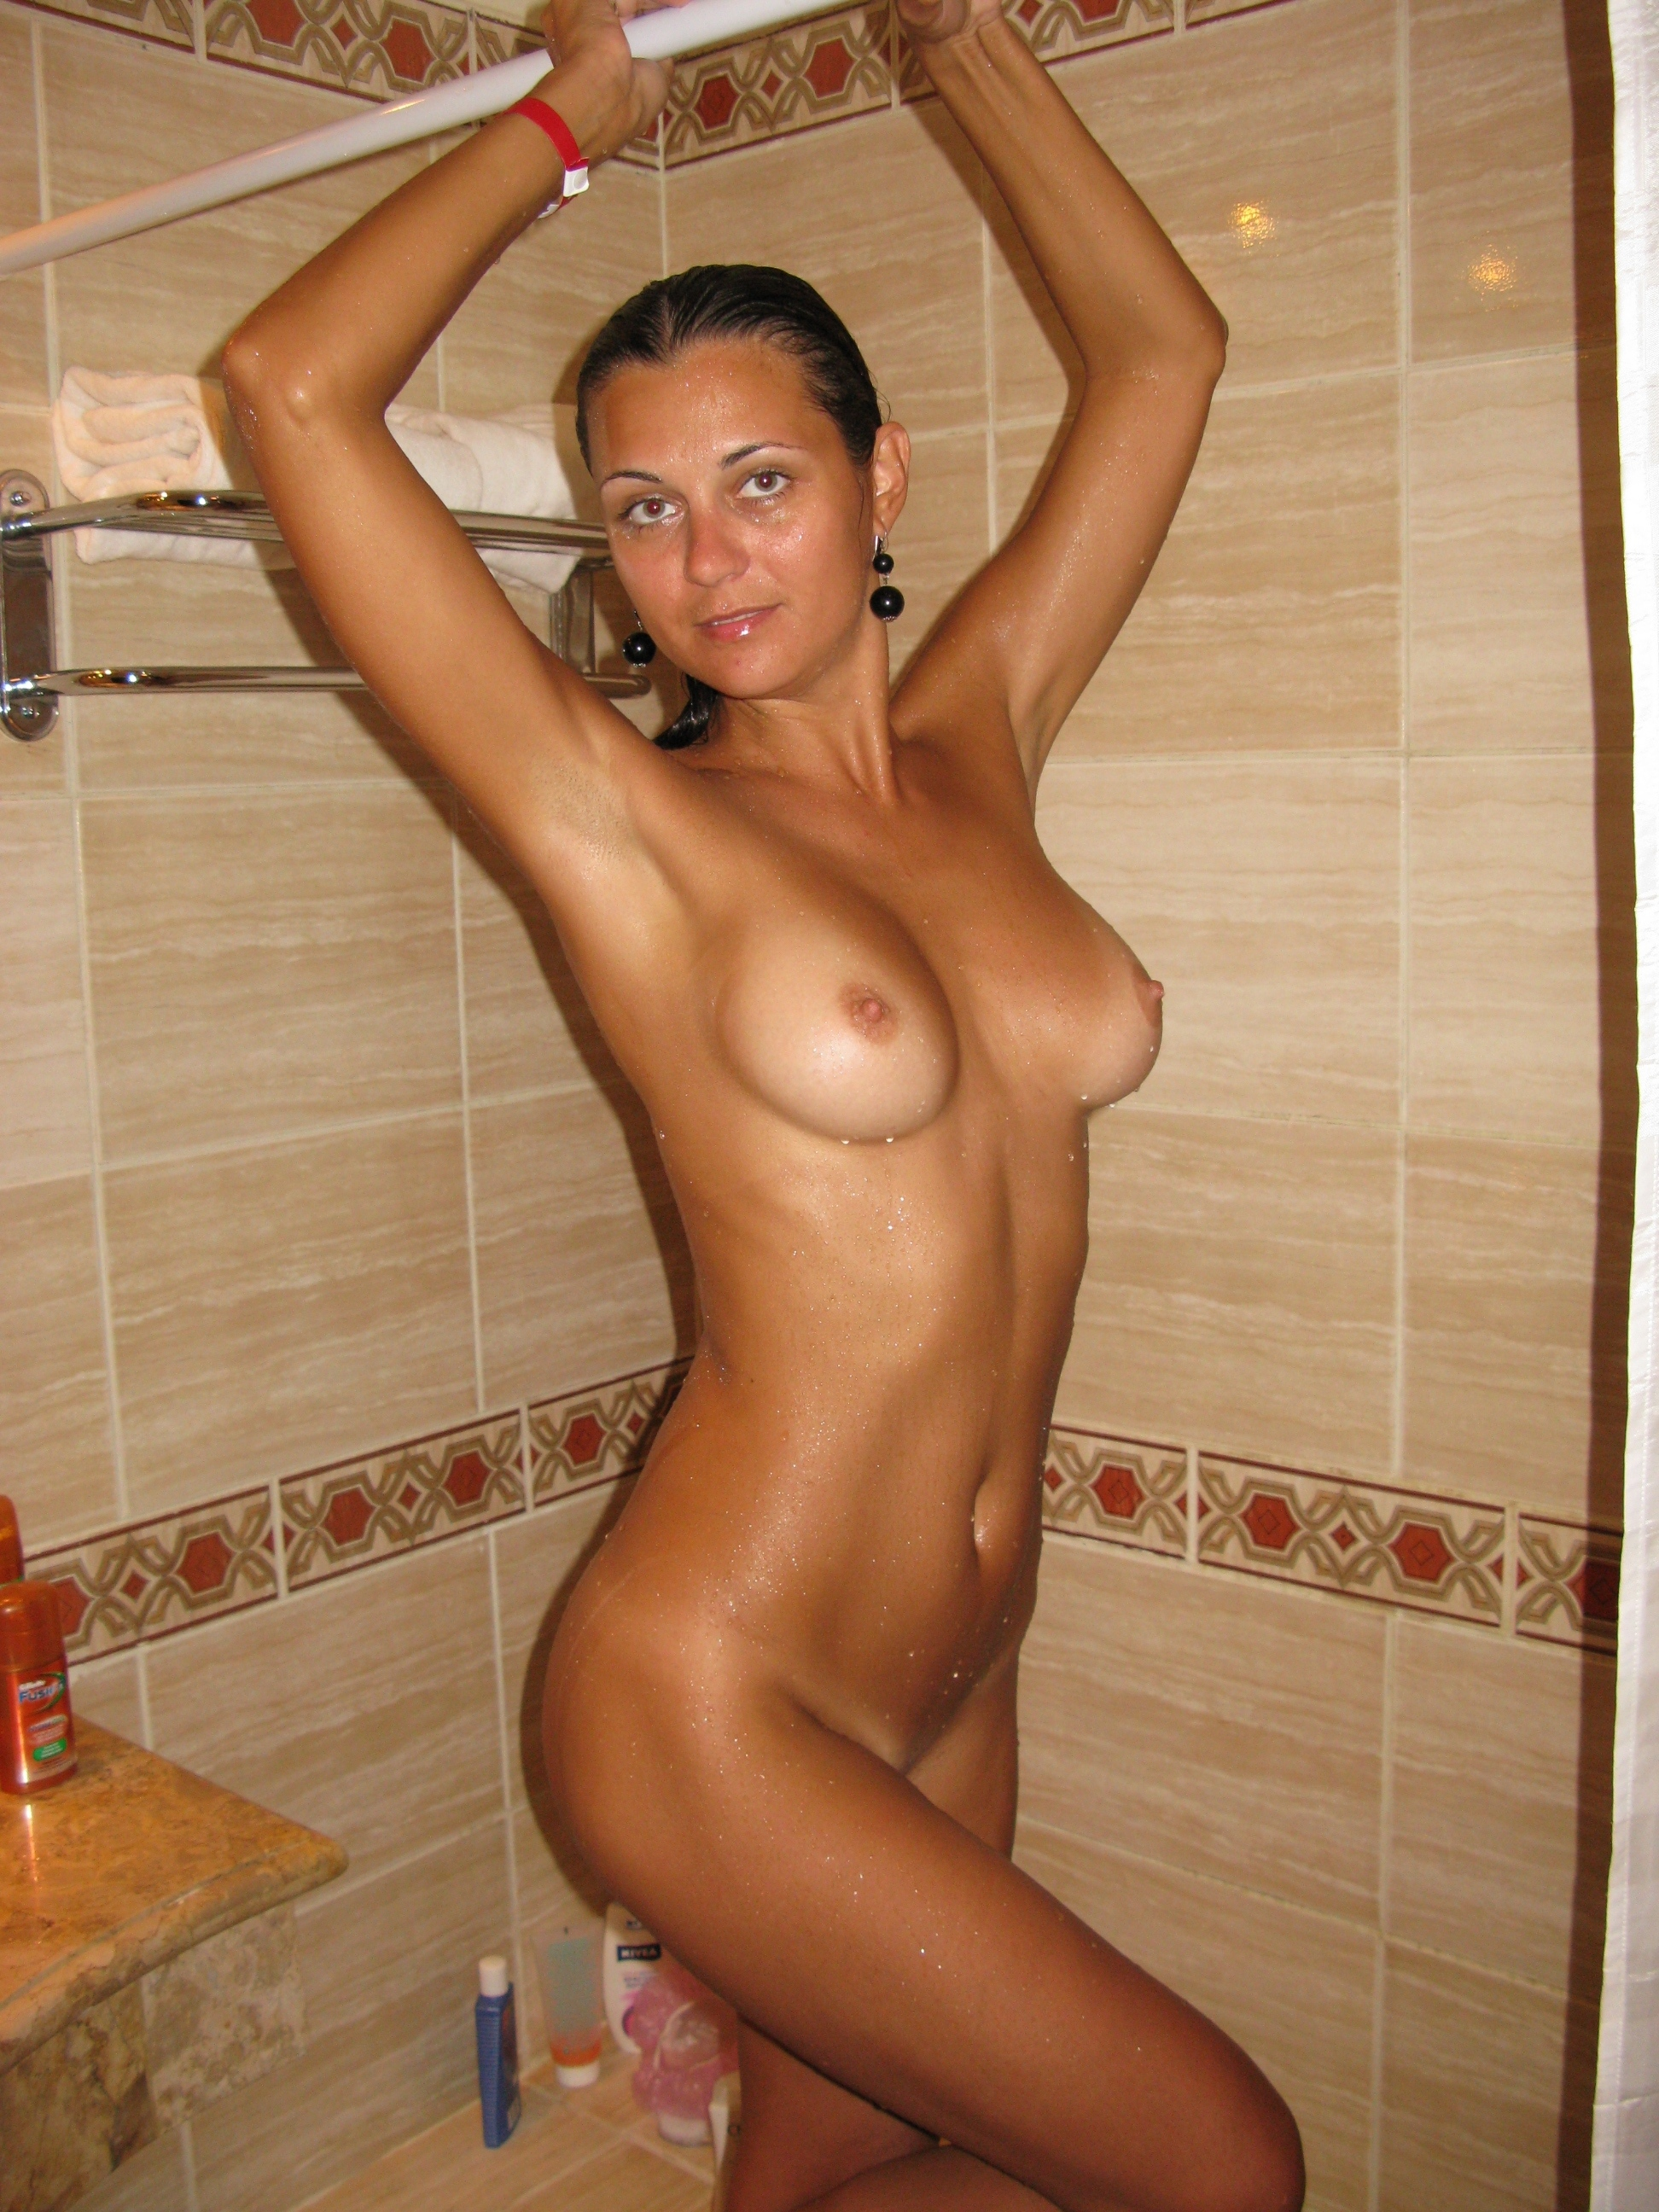 Excited nude amateur body